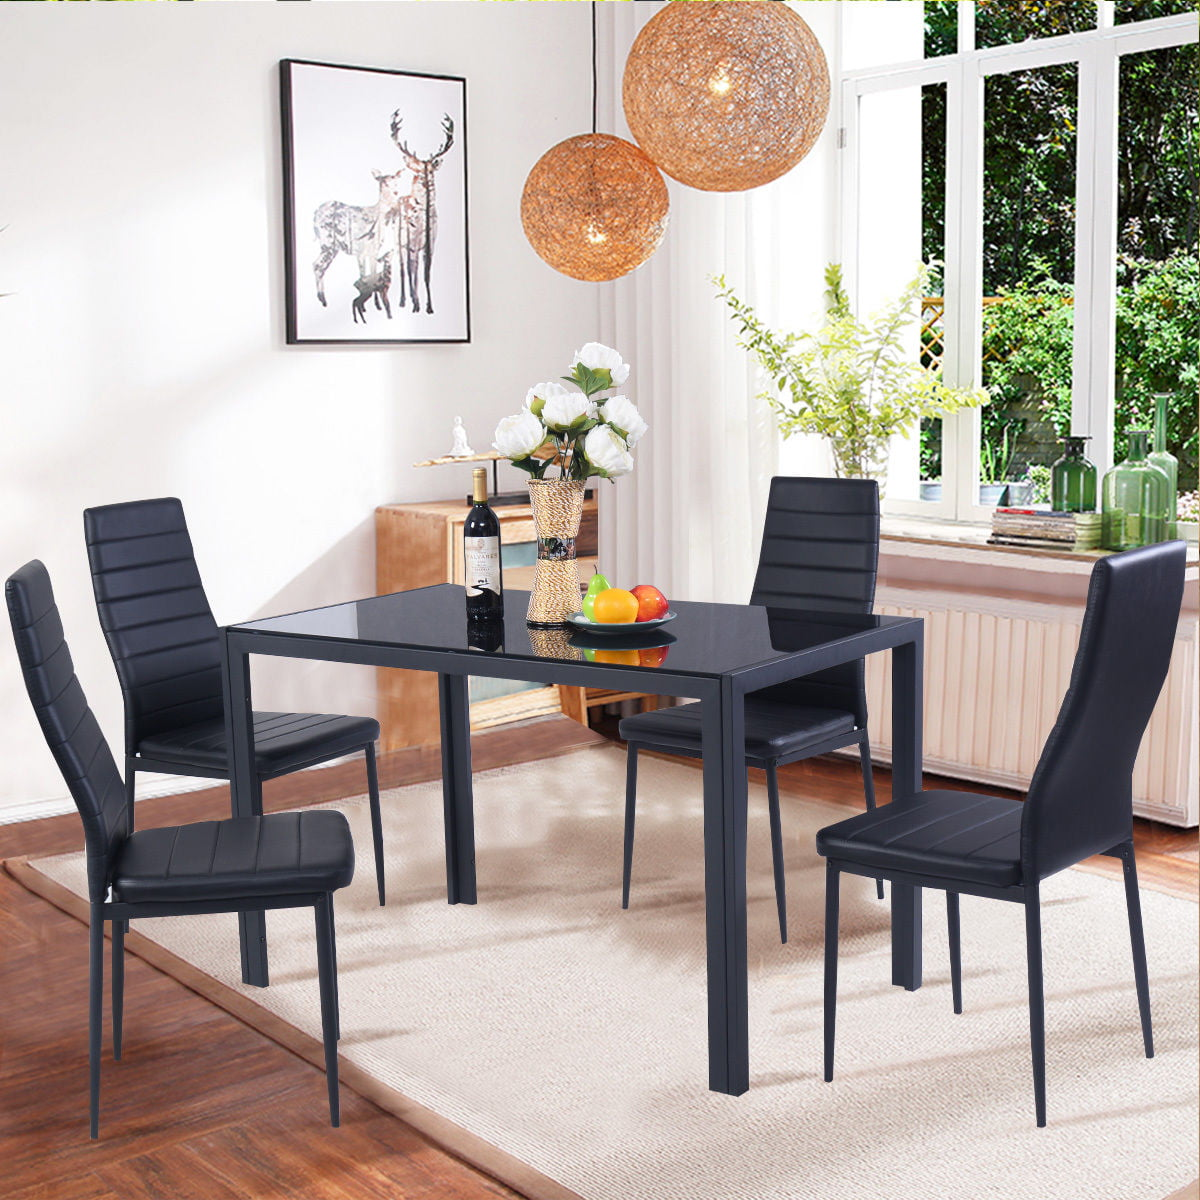 metal dining room sets | Costway 5 Piece Kitchen Dining Set Glass Metal Table and 4 ...